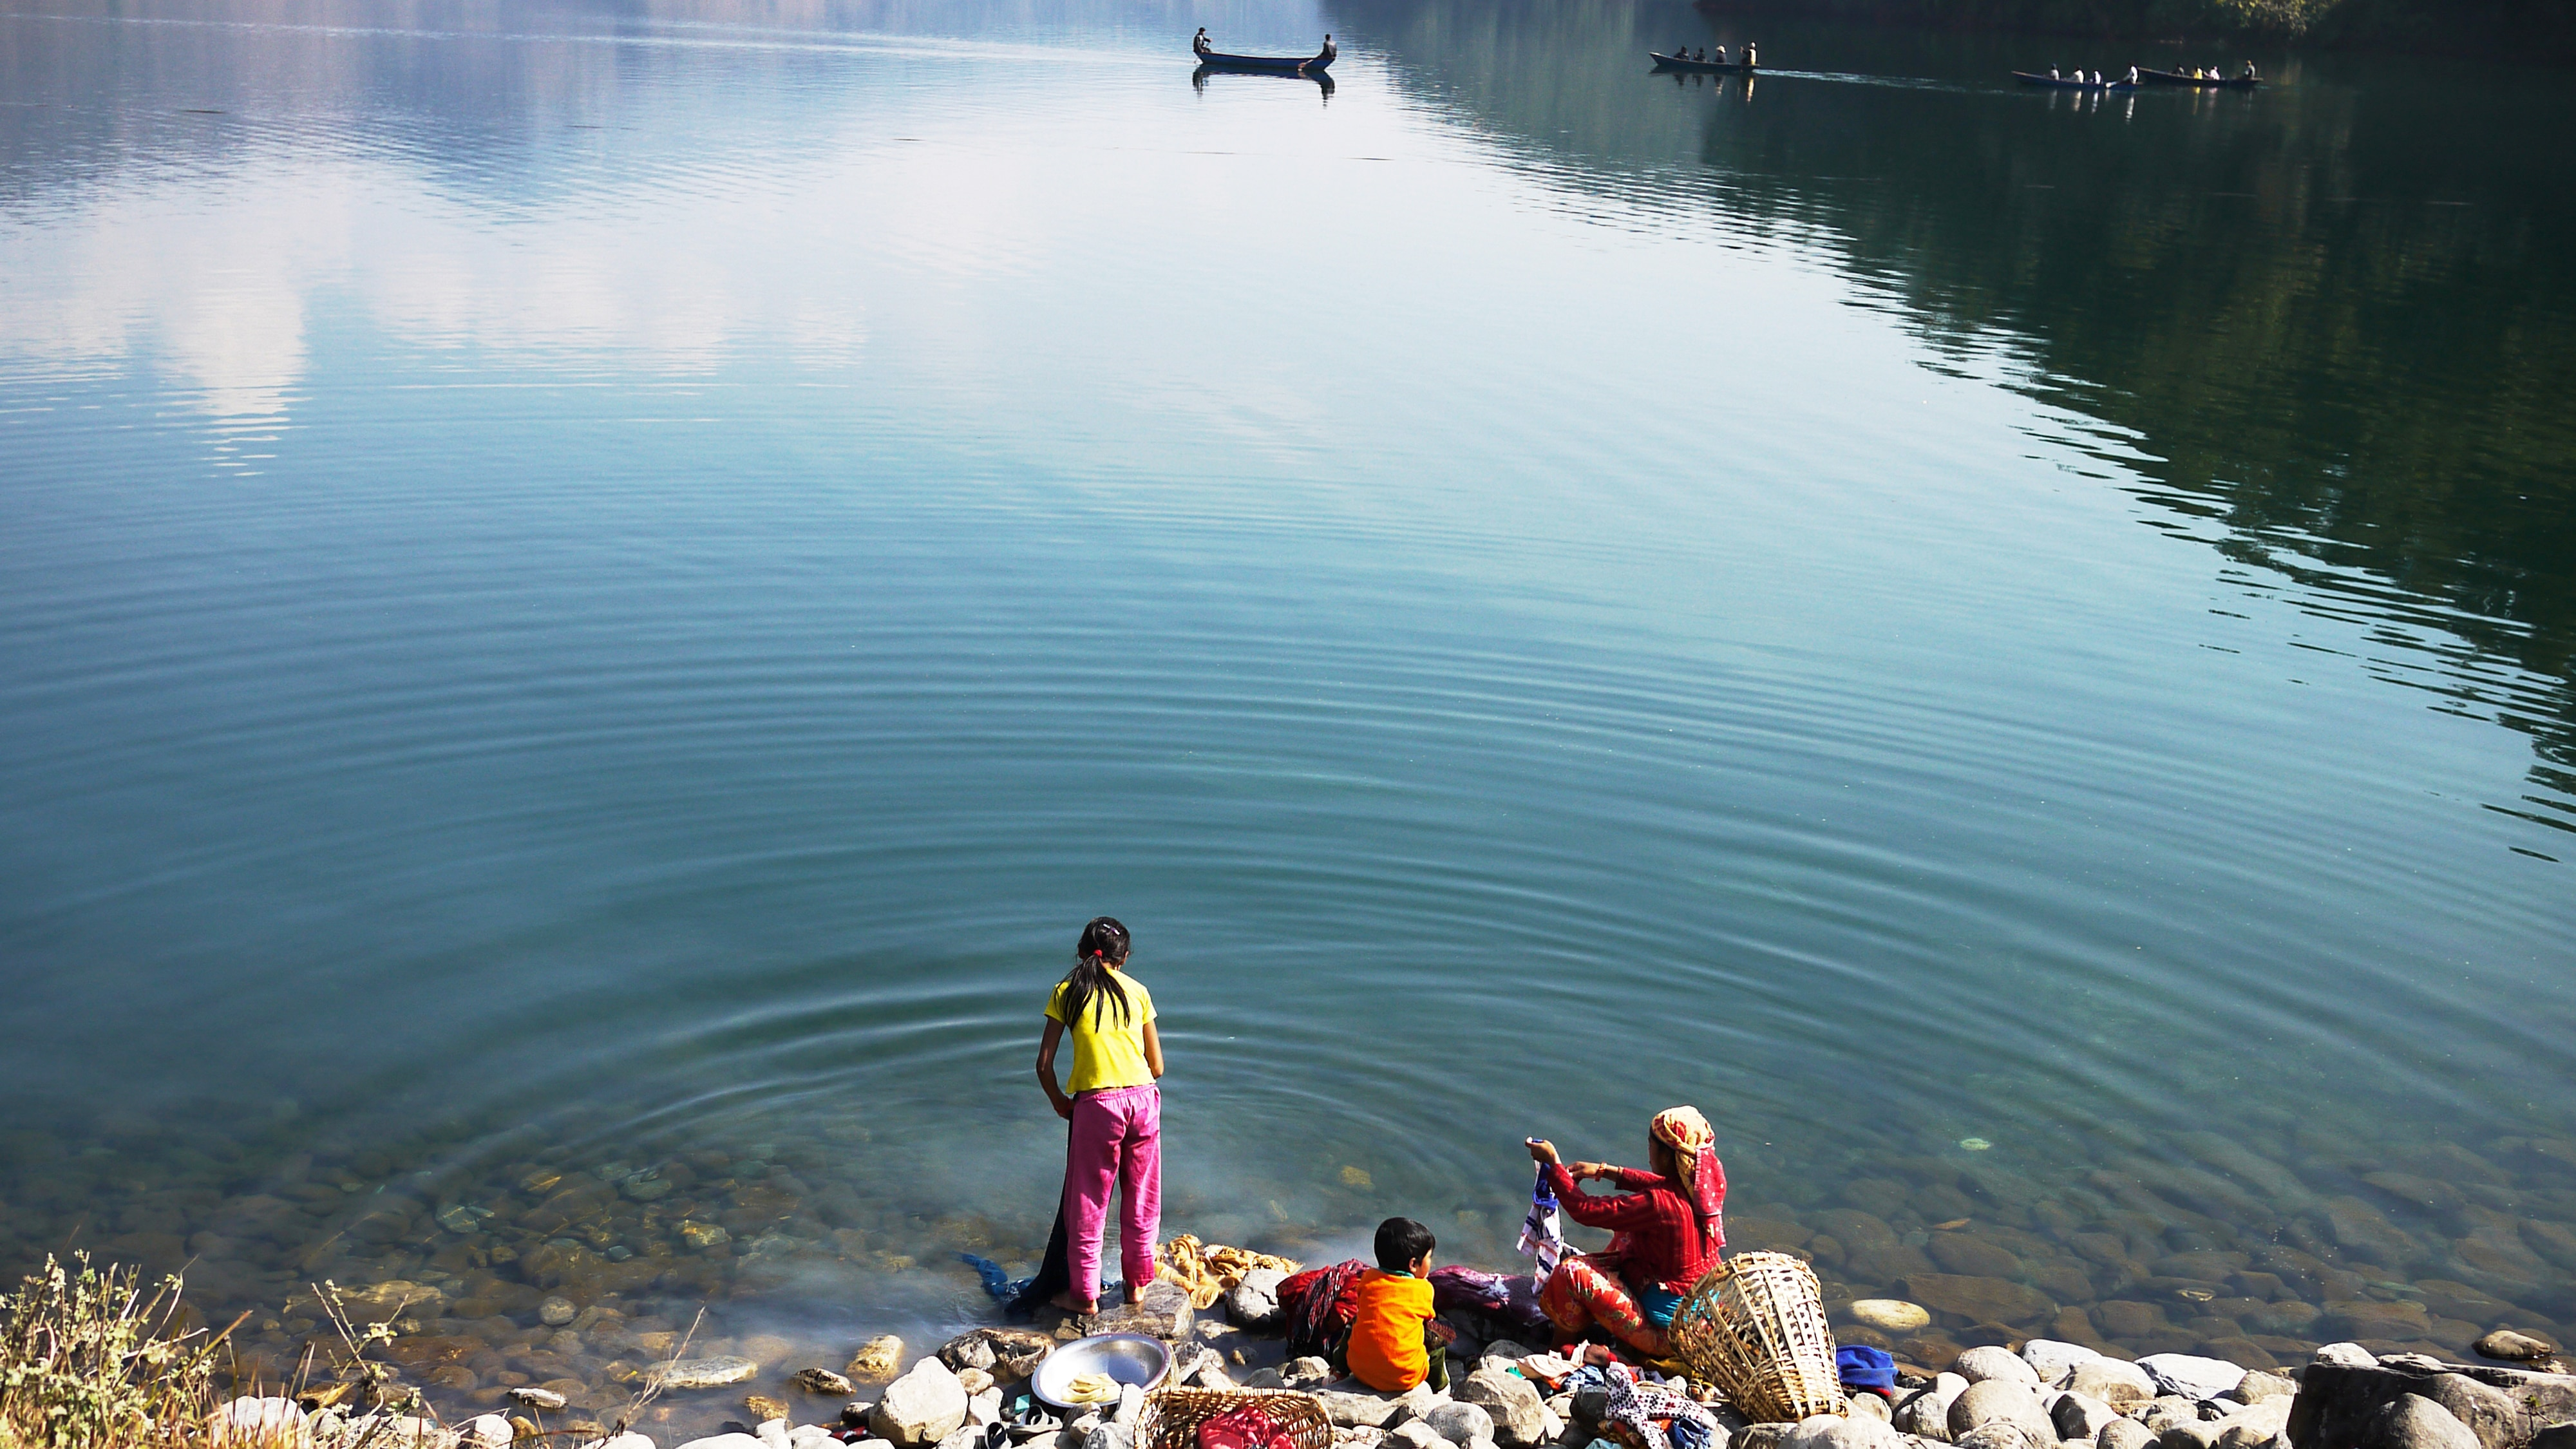 Family washing cloth in the Pokhara lake of reflection of sky and clouds in countryside pokhara, nepal, southern asia developing country, Simply life - Image